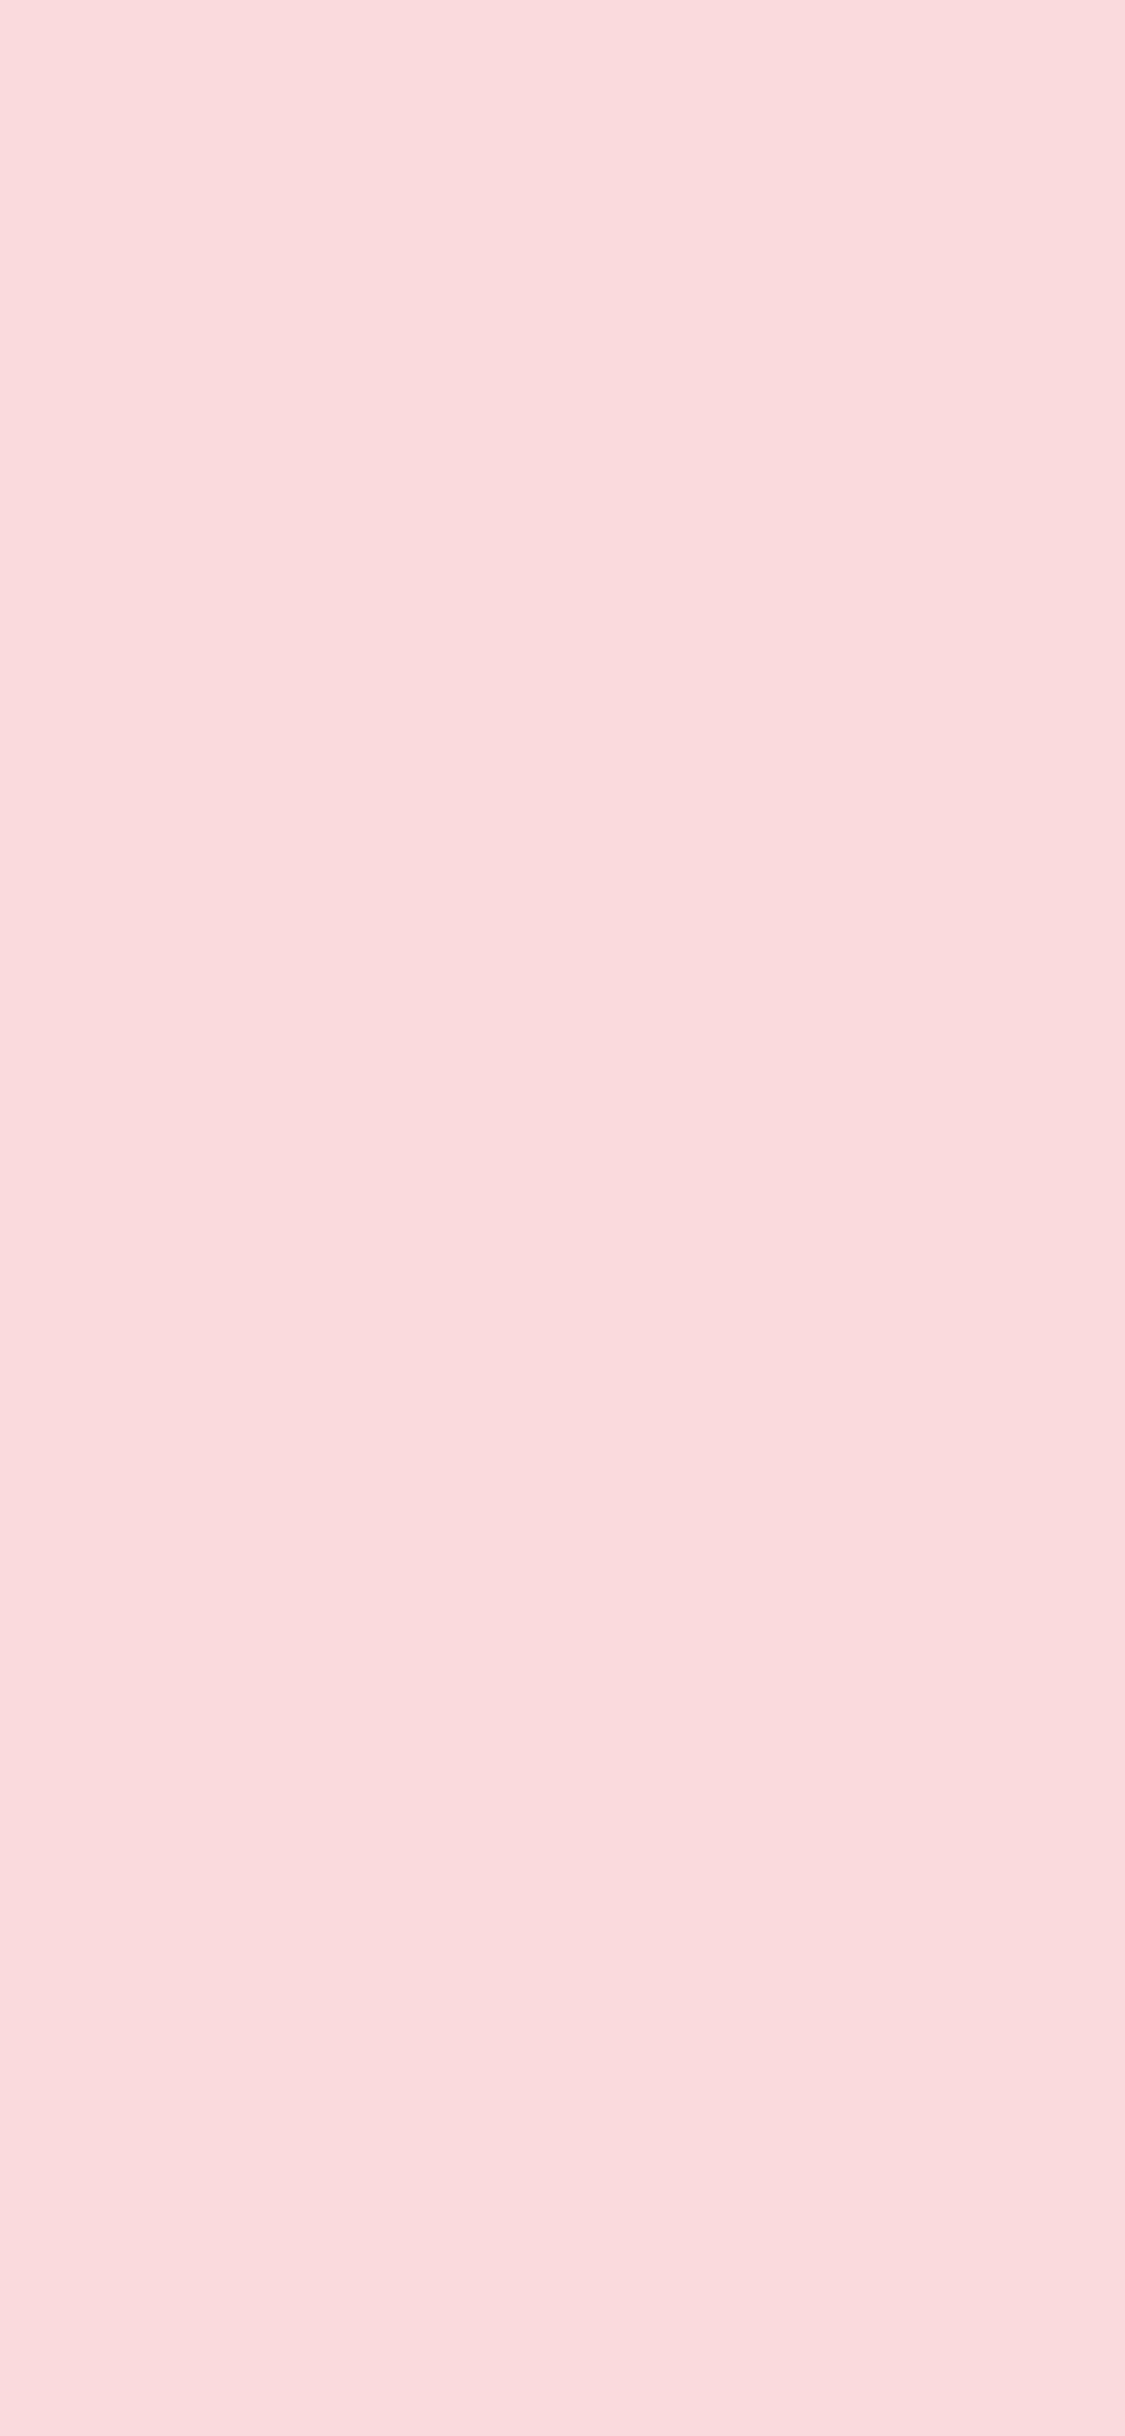 1125x2436 Pale Pink Solid Color Background